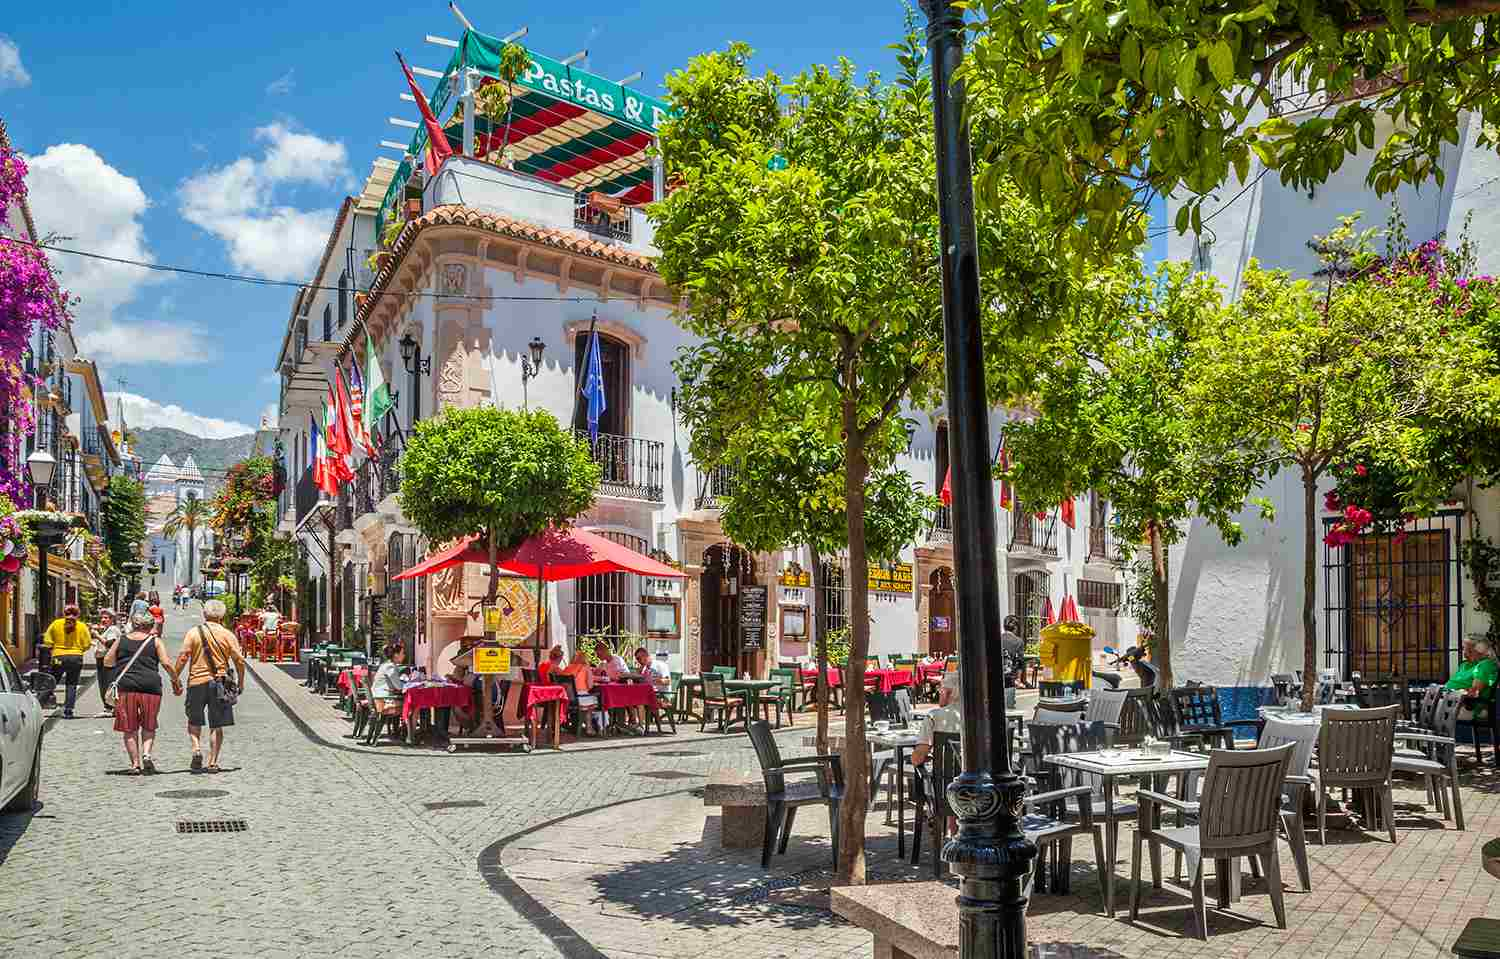 People walking down a restaurant-lined street in Old Town Marbella